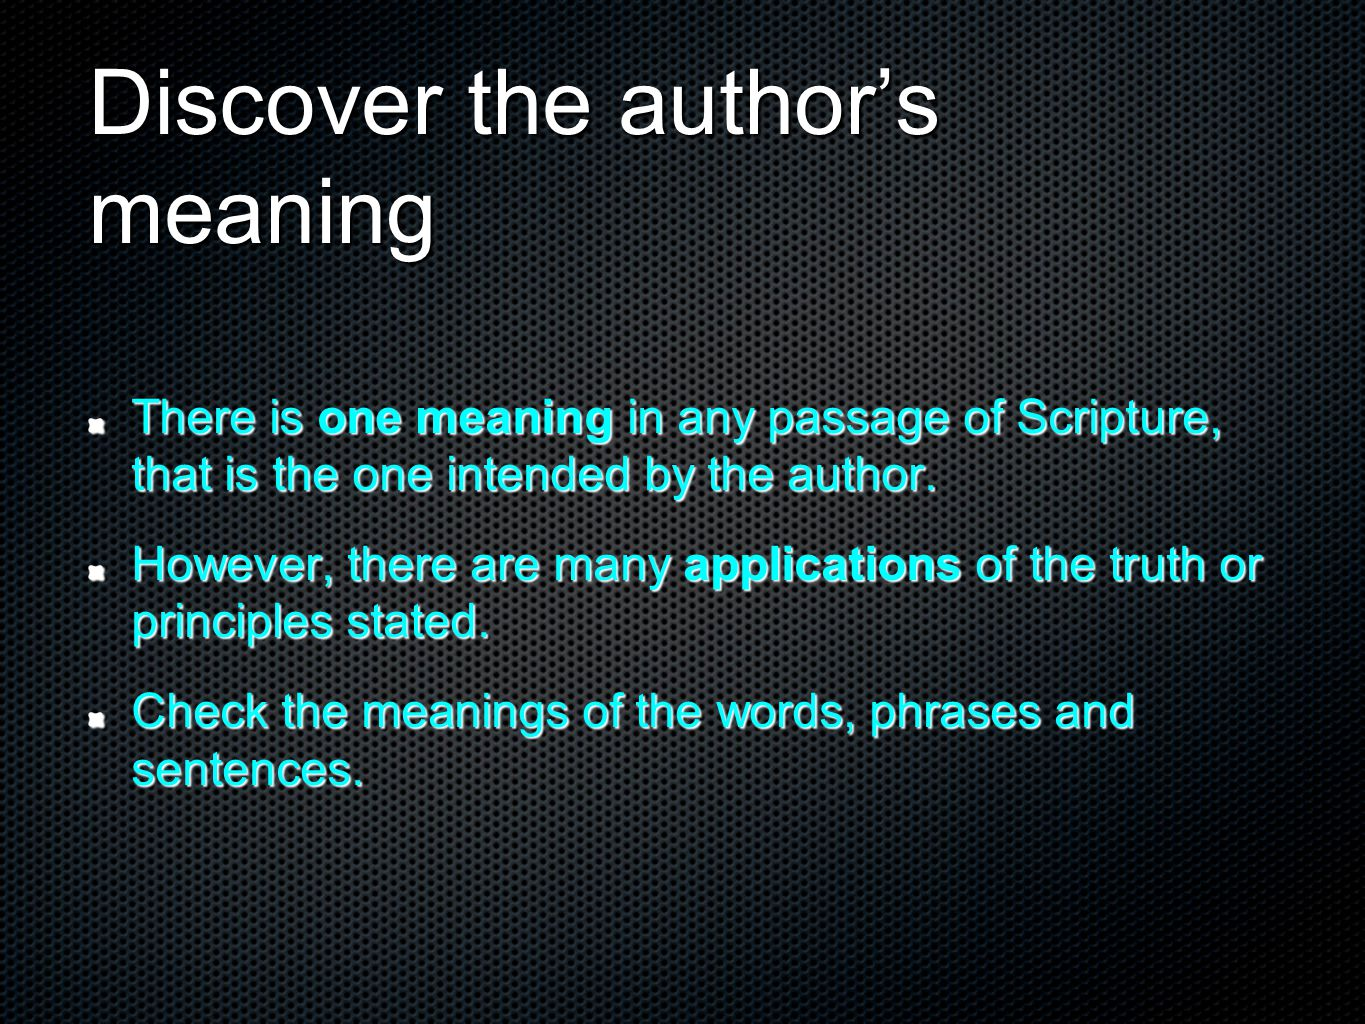 Discover the author's meaning There is one meaning in any passage of Scripture, that is the one intended by the author. However, there are many applic